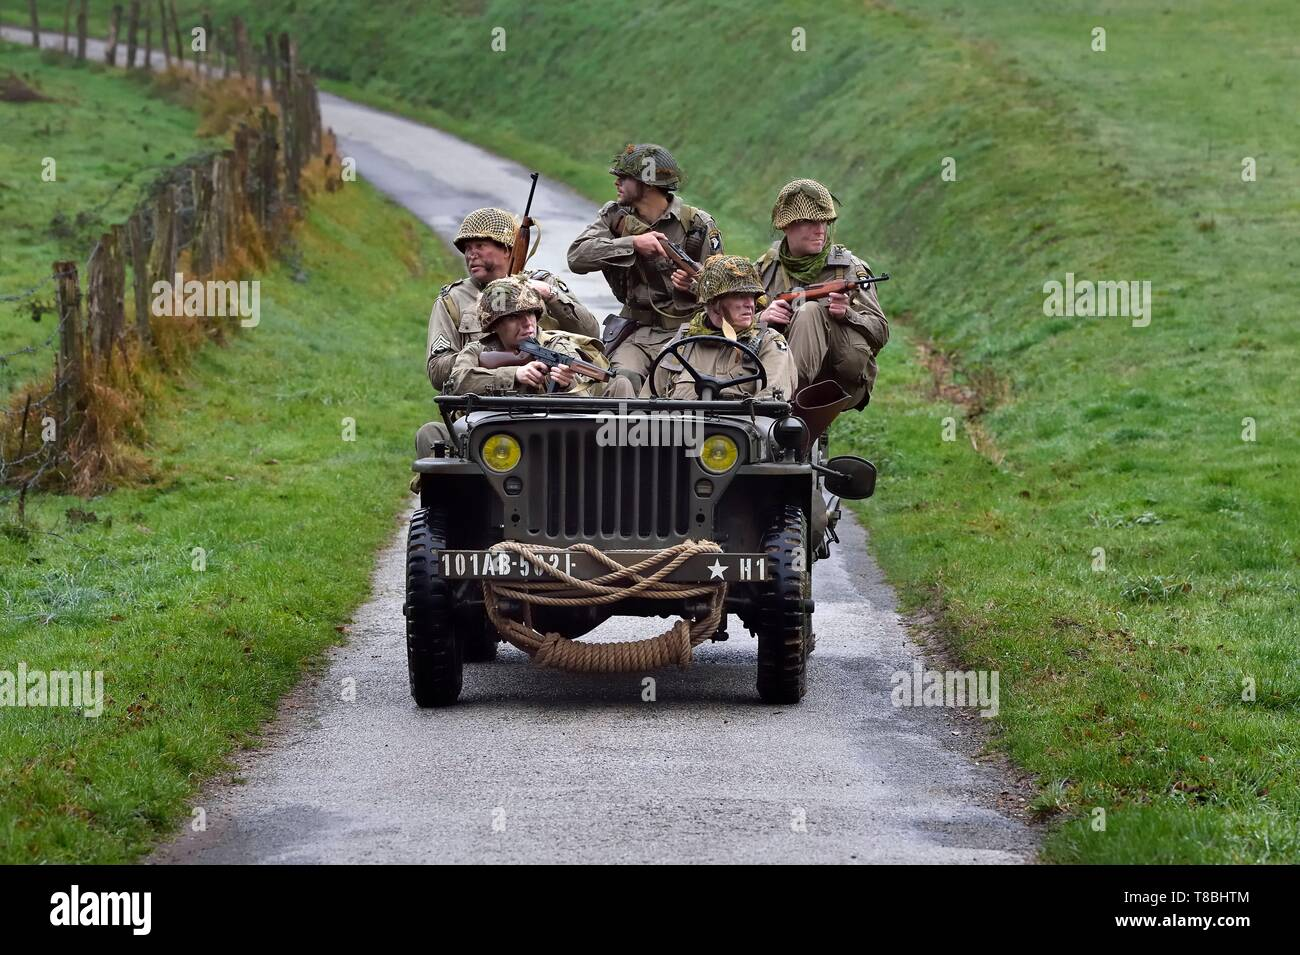 France, Eure, Sainte Colombe prÚs Vernon, Allied Reconstitution Group (US World War 2 and french Maquis historical reconstruction Association), reenactors in uniform of the 101st US Airborne Division progressing in a jeep Willys Stock Photo